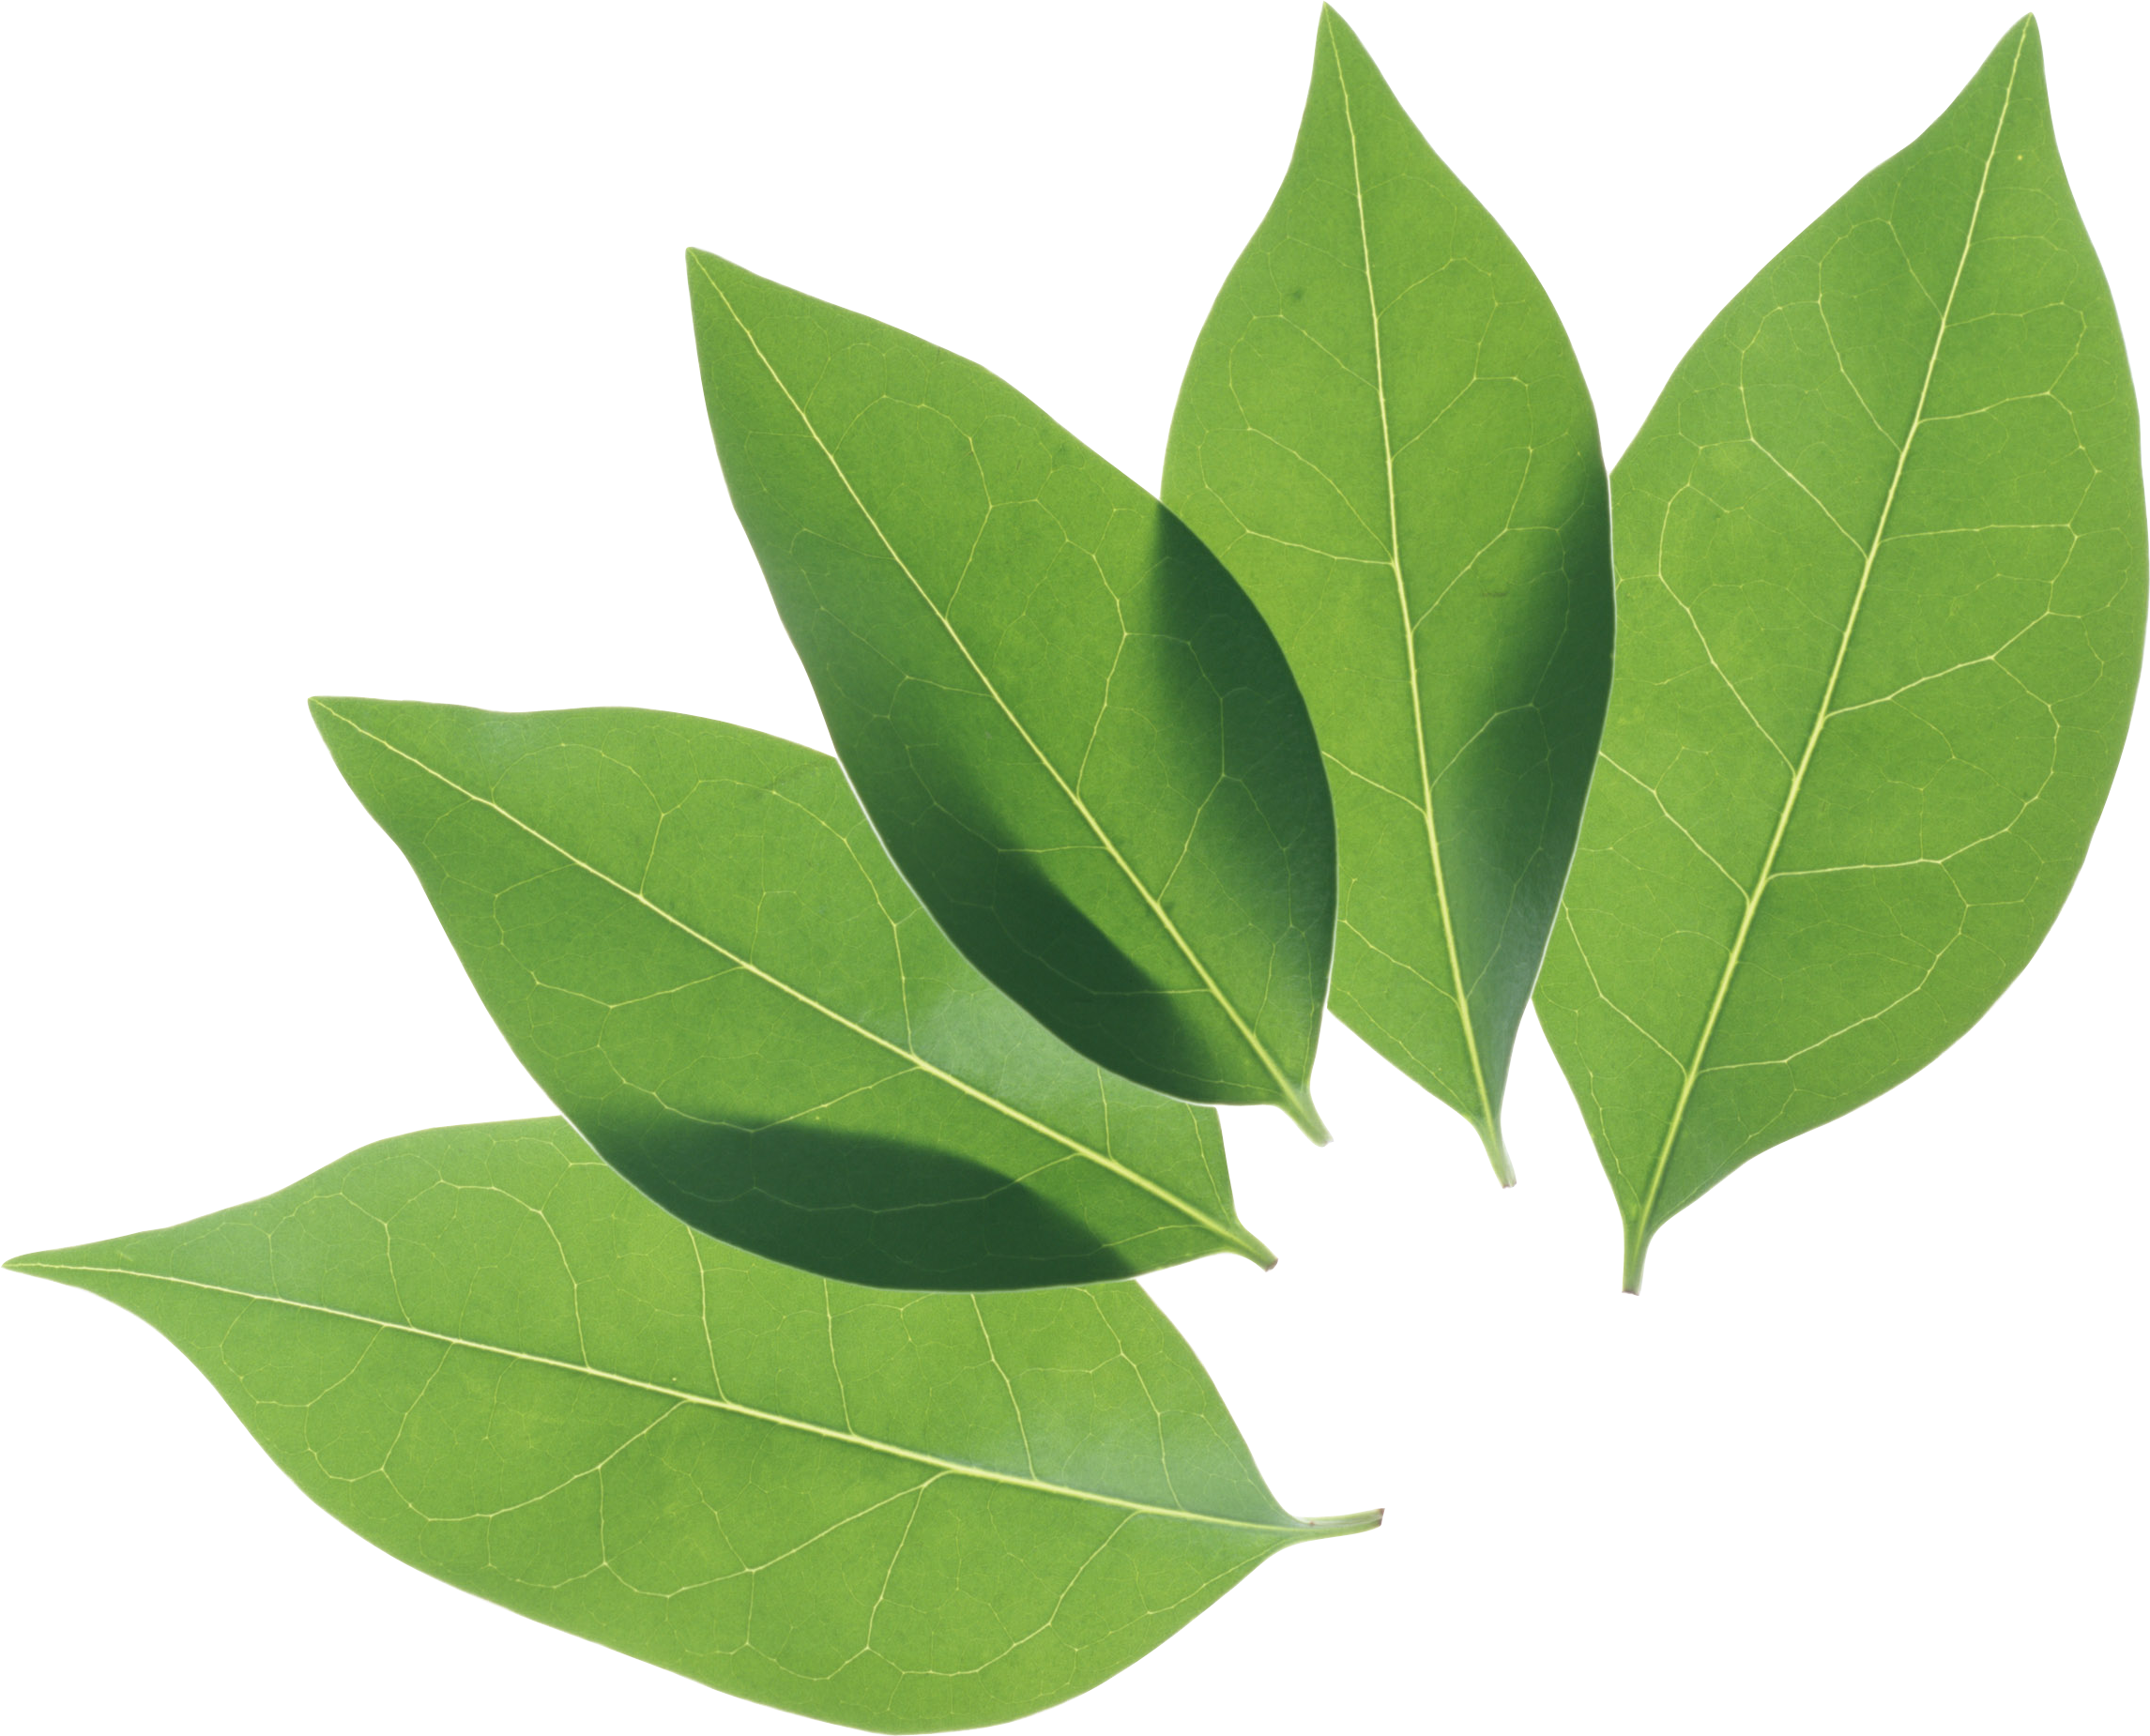 green leaves png image